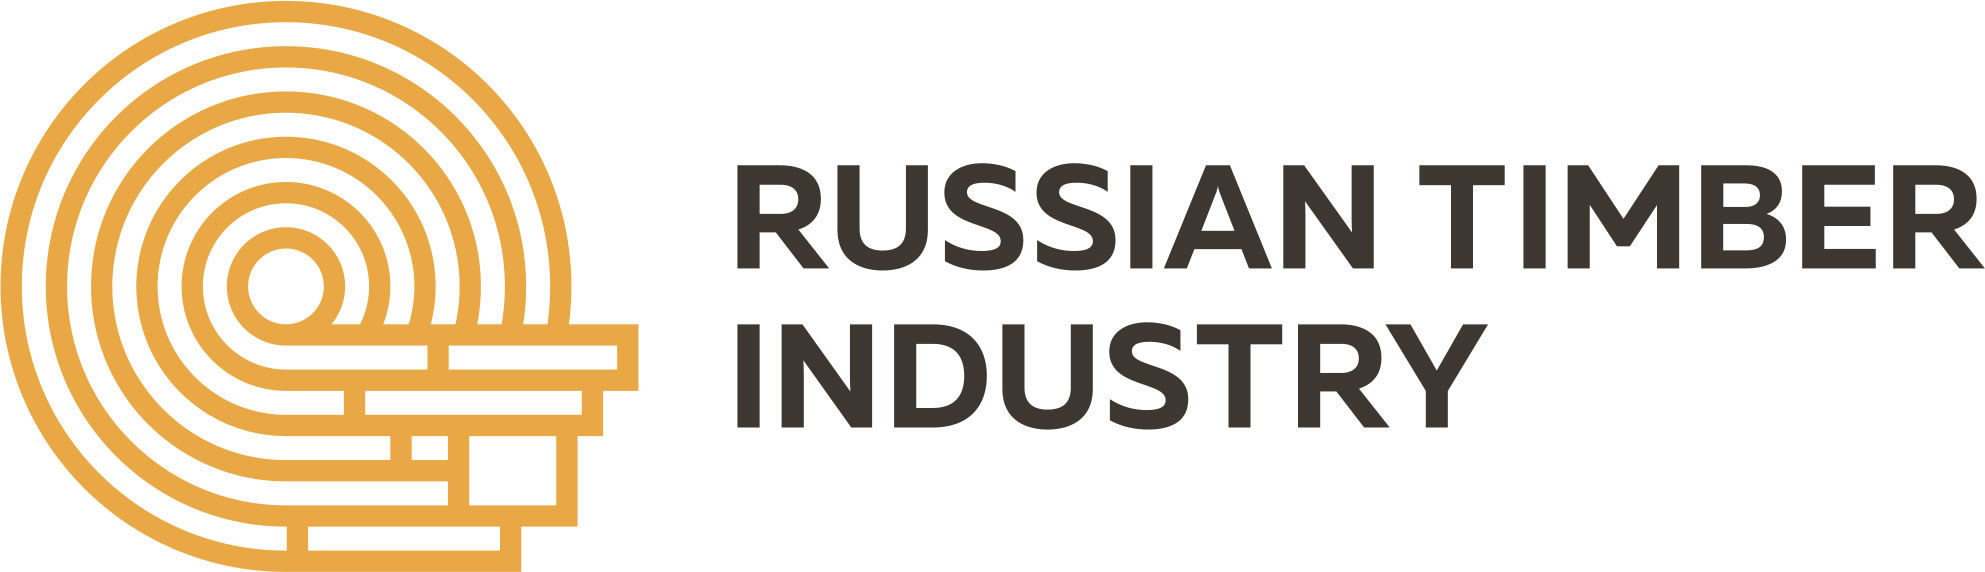 Of Russian Timber Industry Complex 39